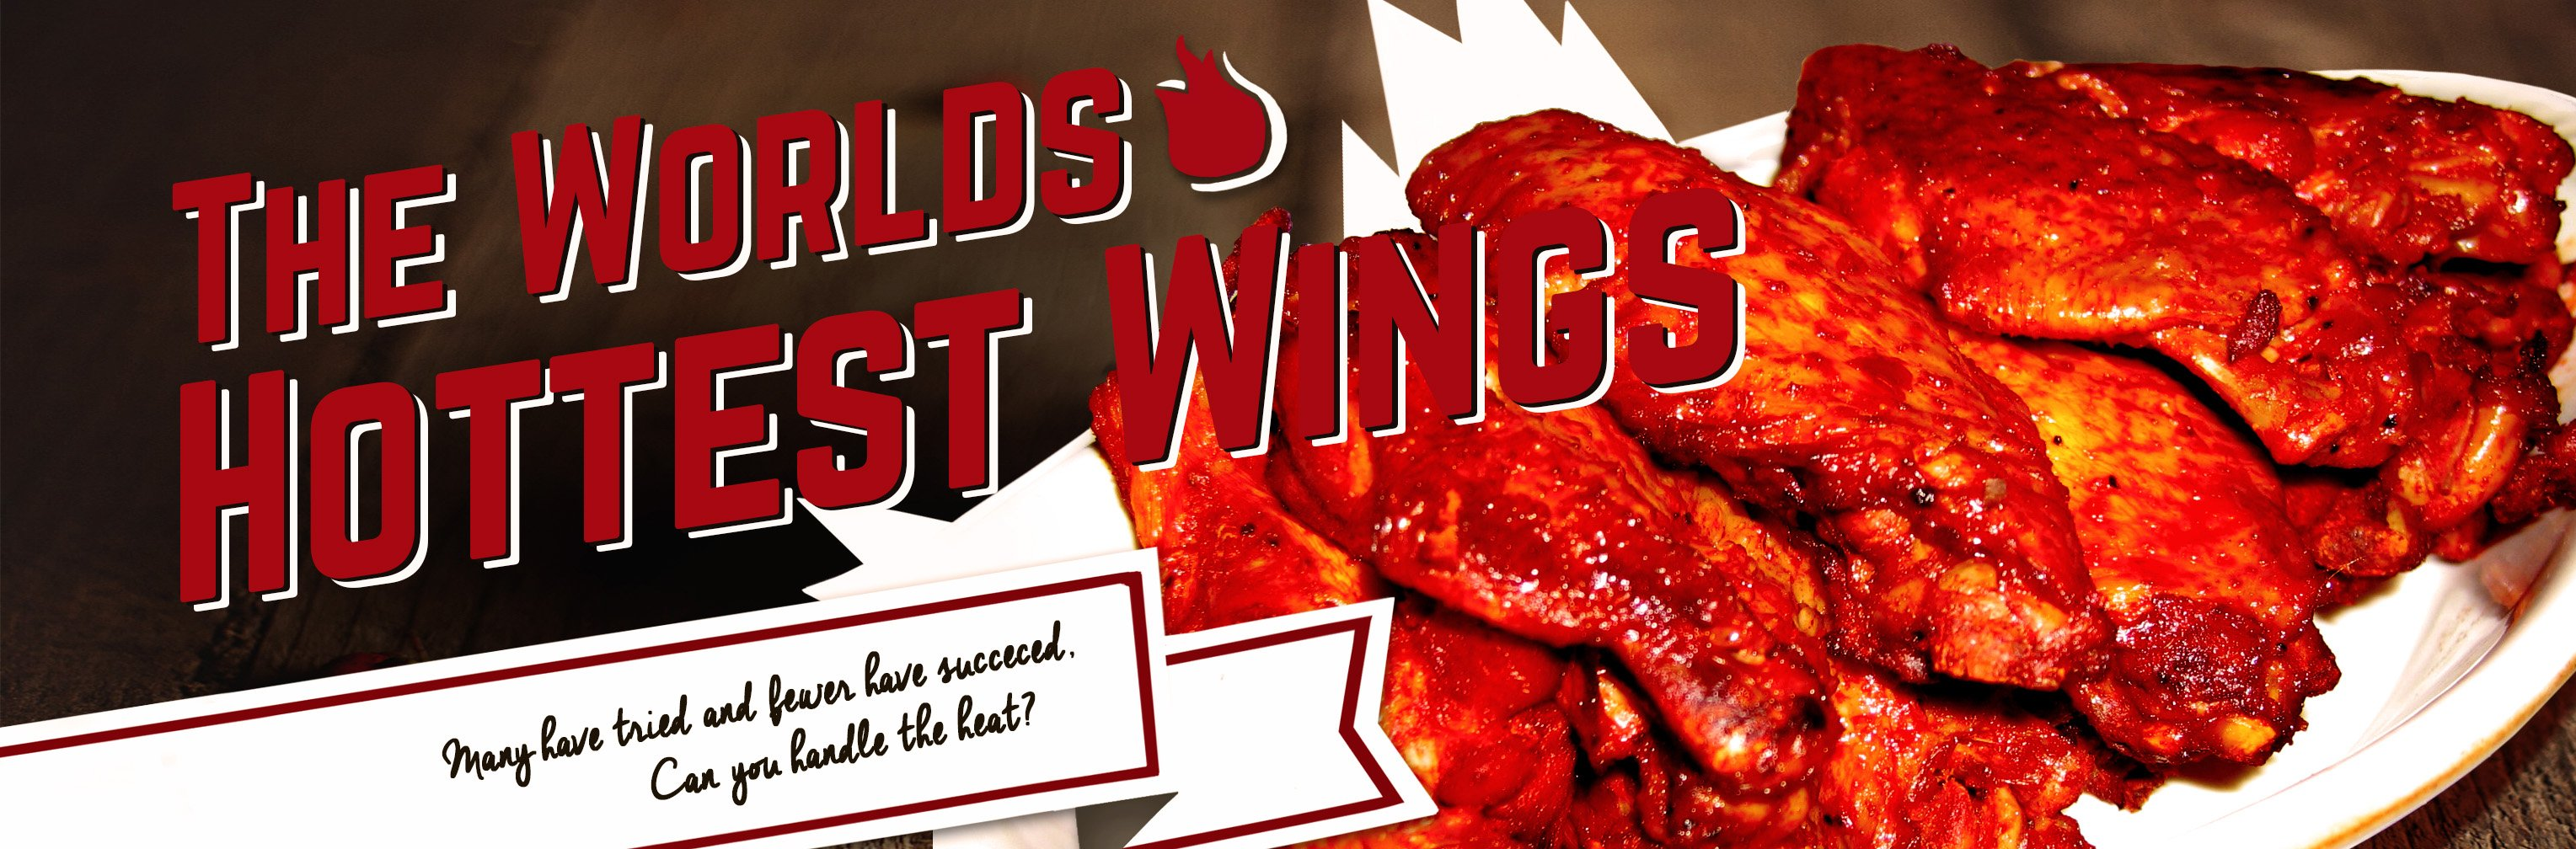 Try the World's Hottest Hot Wings at the Fusion Grill Bar & Restaurant in Lyndon, VT